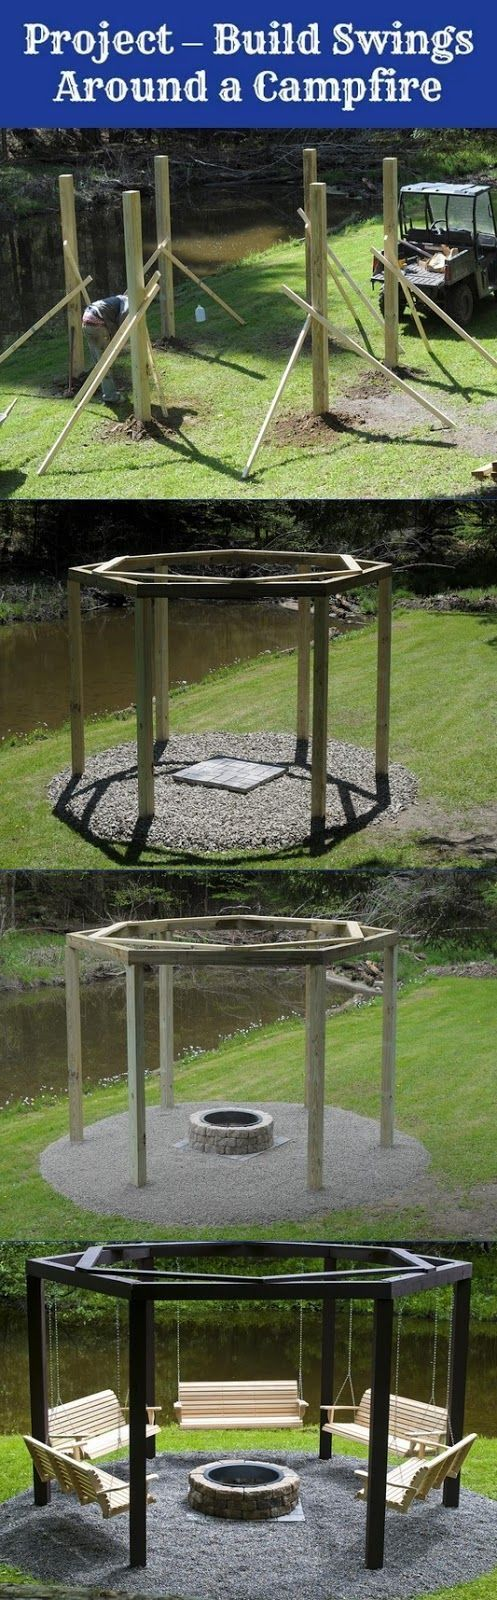 Pure. Genius. Must. Have! I'm doing this in the Spring!!